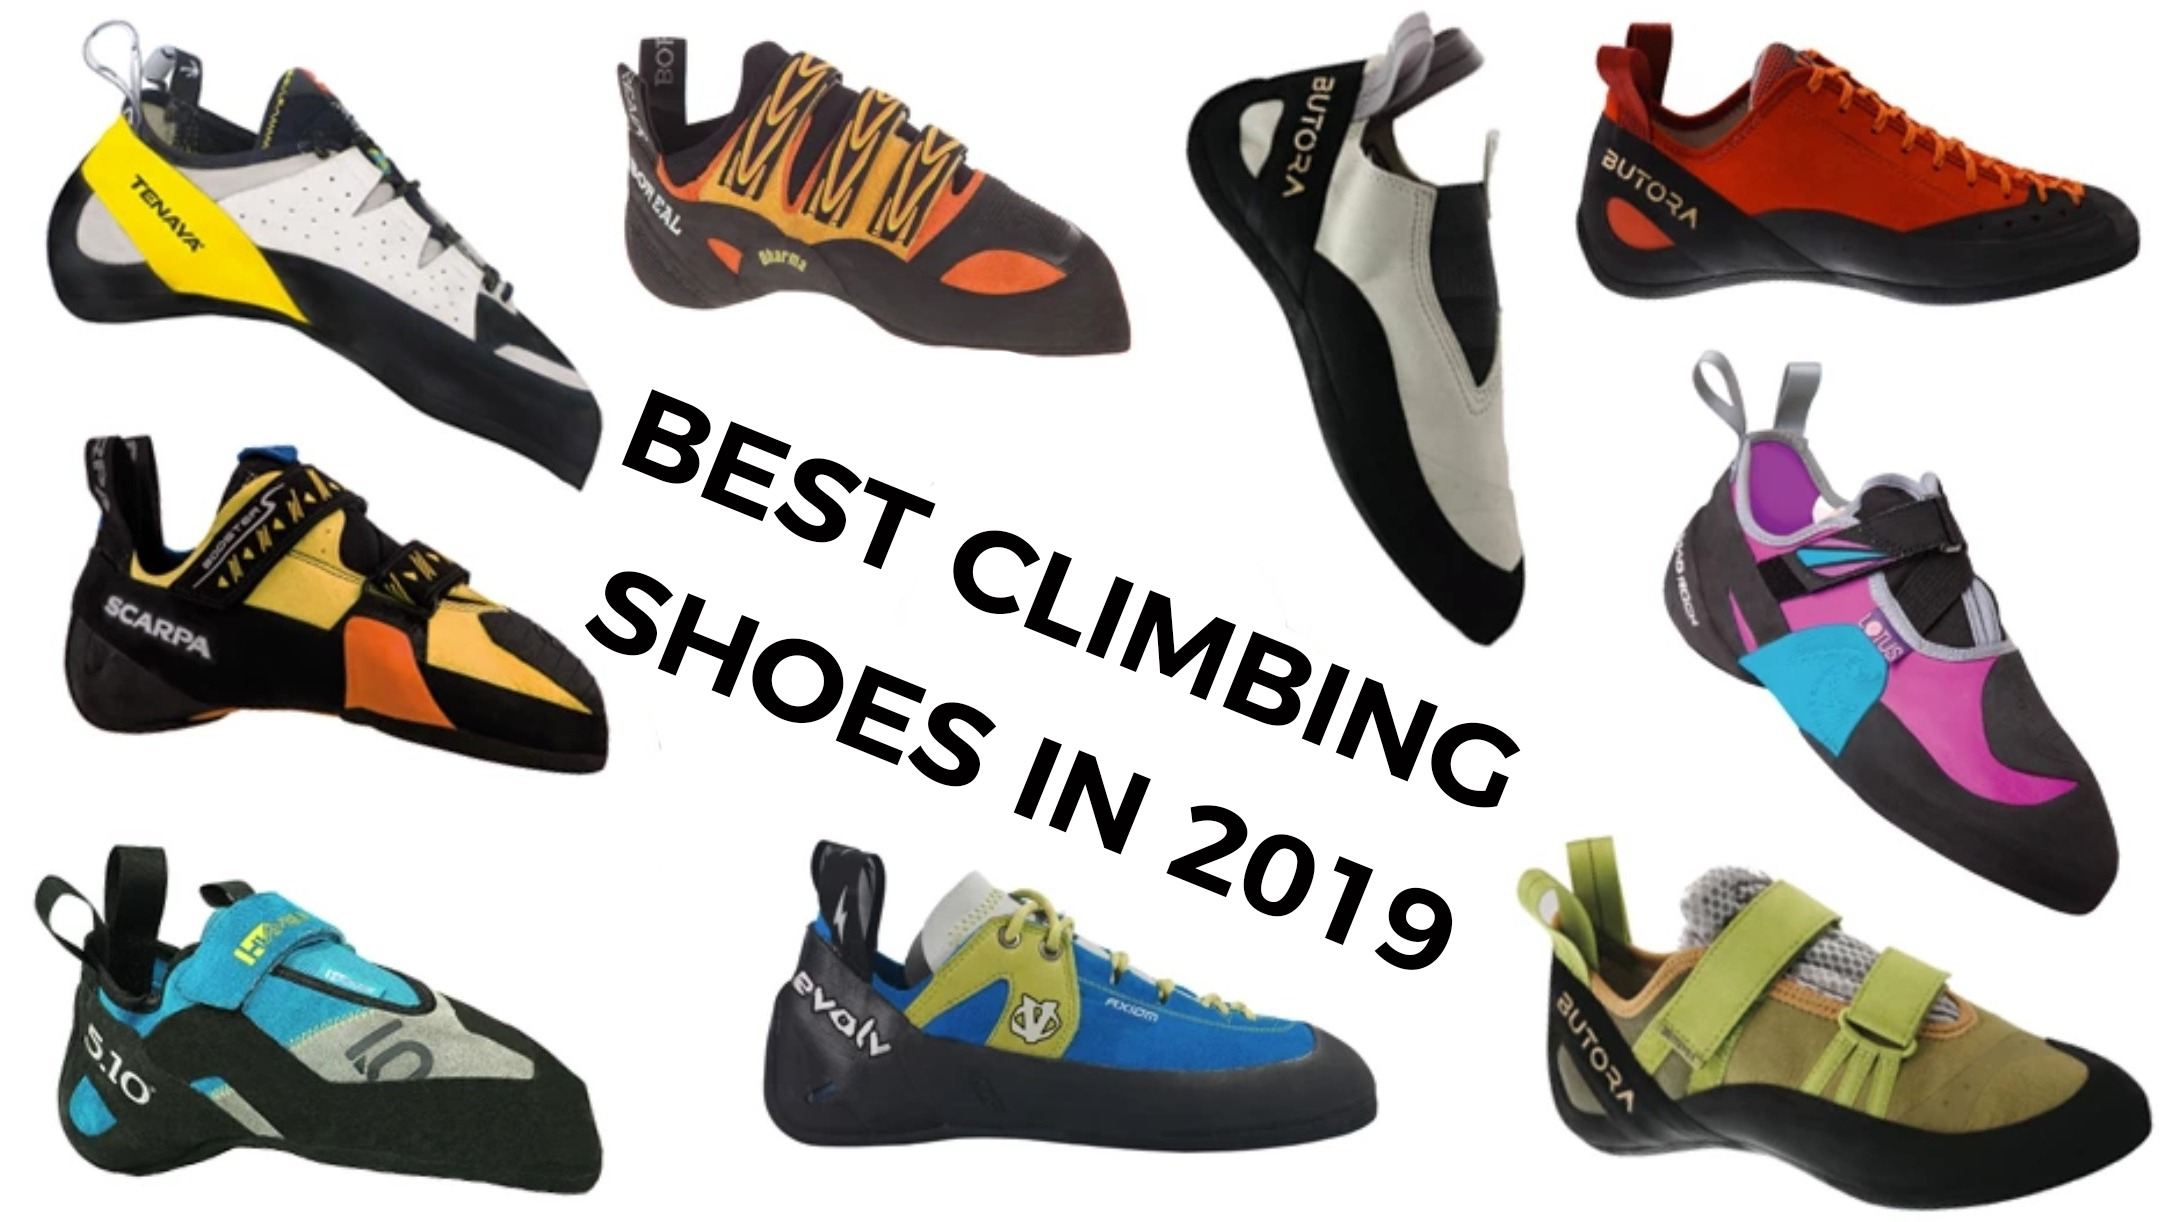 new photos online shop thoughts on 4 Best Rock Climbing Shoes [2019] | Feelboosted